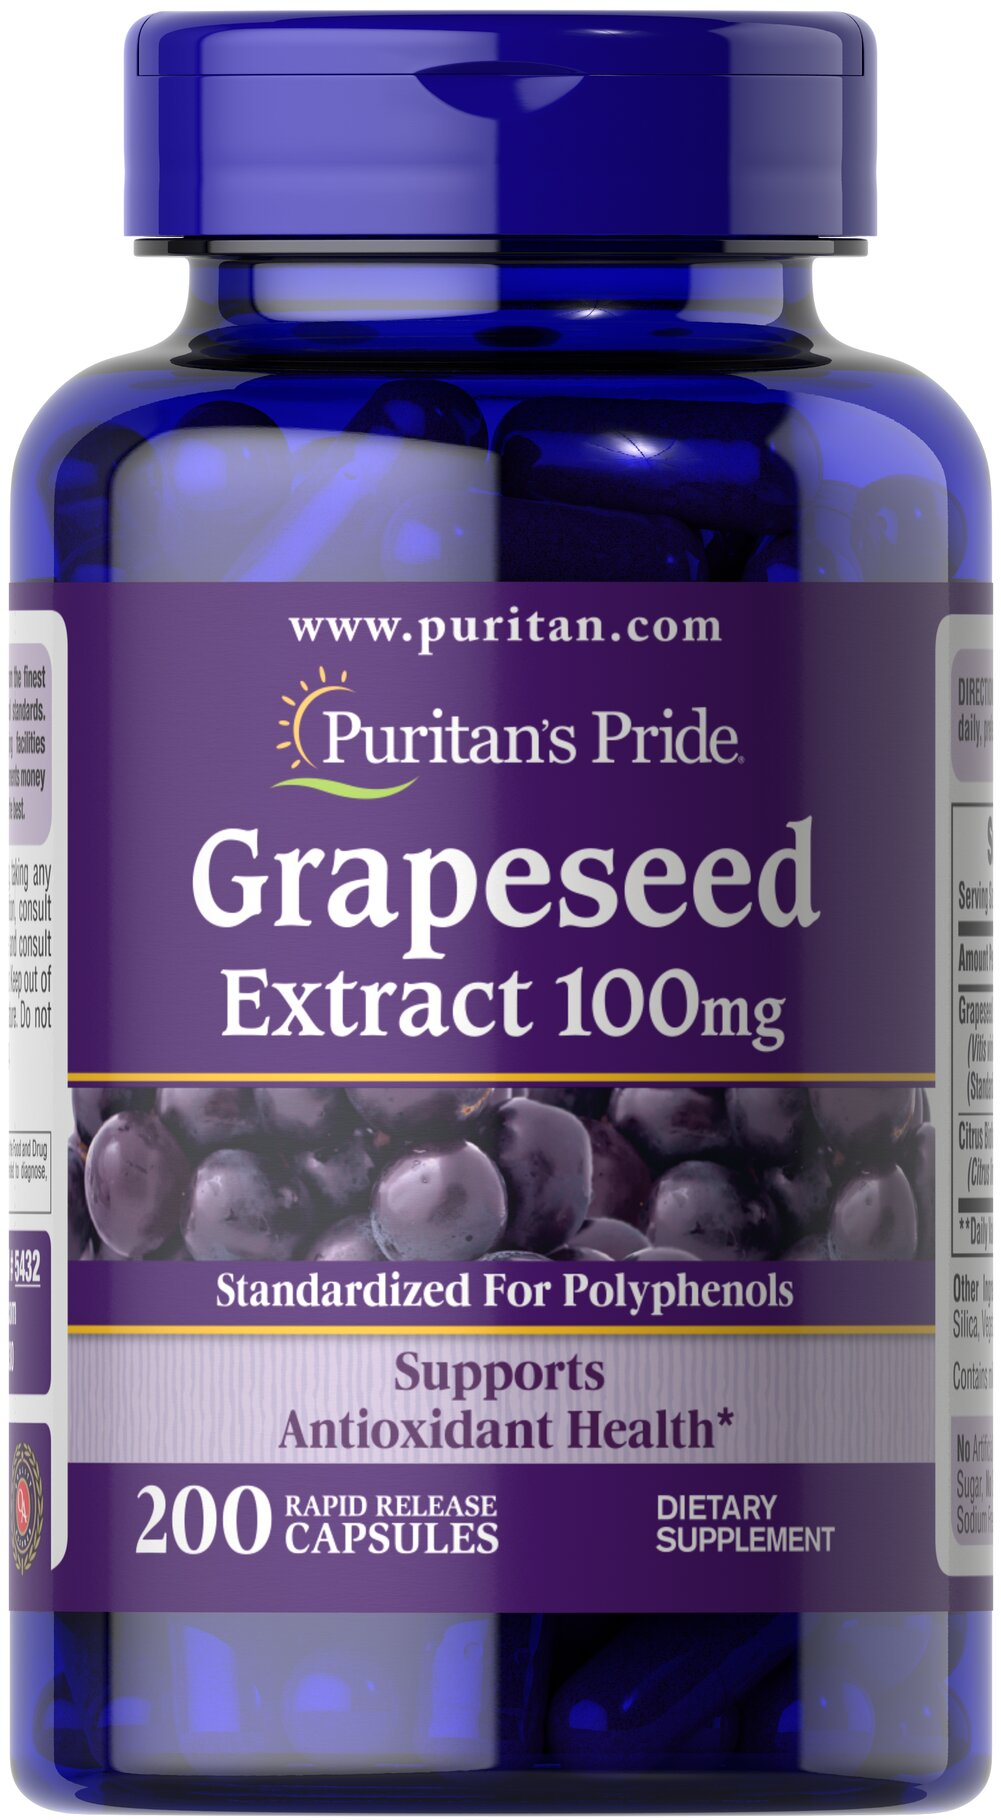 Grapeseed Extract 100 mg <p><strong></strong>Grapeseed Extract helps support antioxidant health.** Antioxidants are nutrients that help to counter the destructive nature of free radicals and assist in maintaining good health.** Grapeseed extract contains oligomeric proanthocyanidins (OPCs), which are naturally occurring bioflavonoids. Standardized to contain 50% Polyphenols. Adults can take one capsule three times daily.</p> 200 Capsules 100 mg $32.99